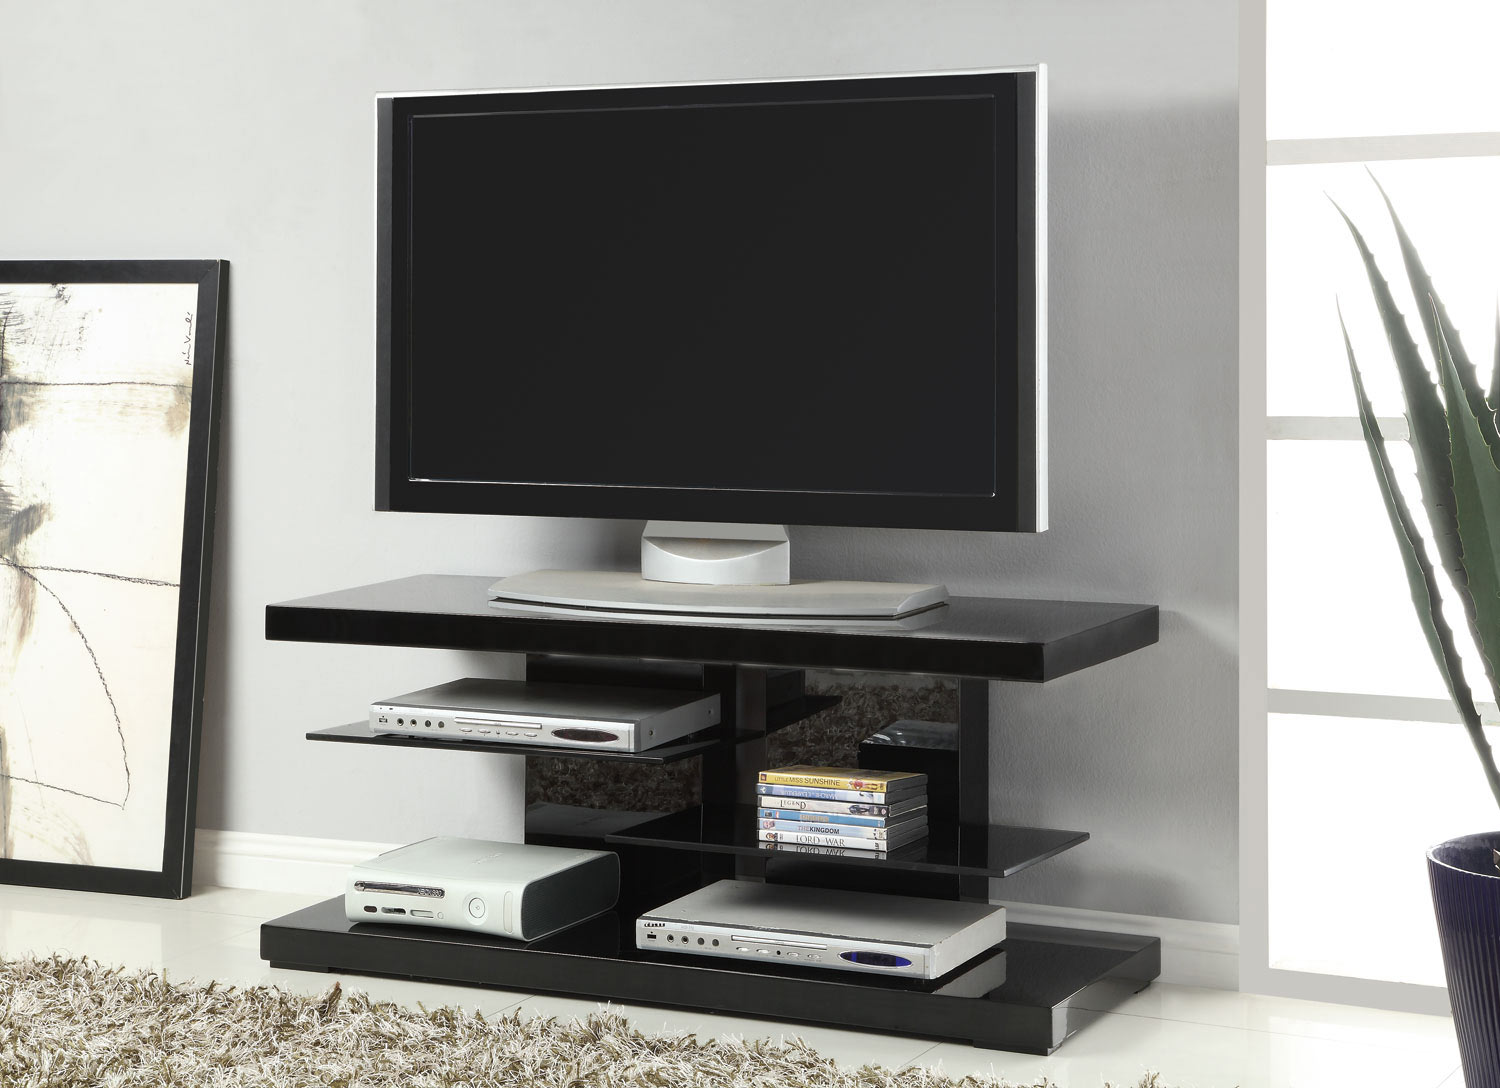 Coaster 700840 TV Stand - Black